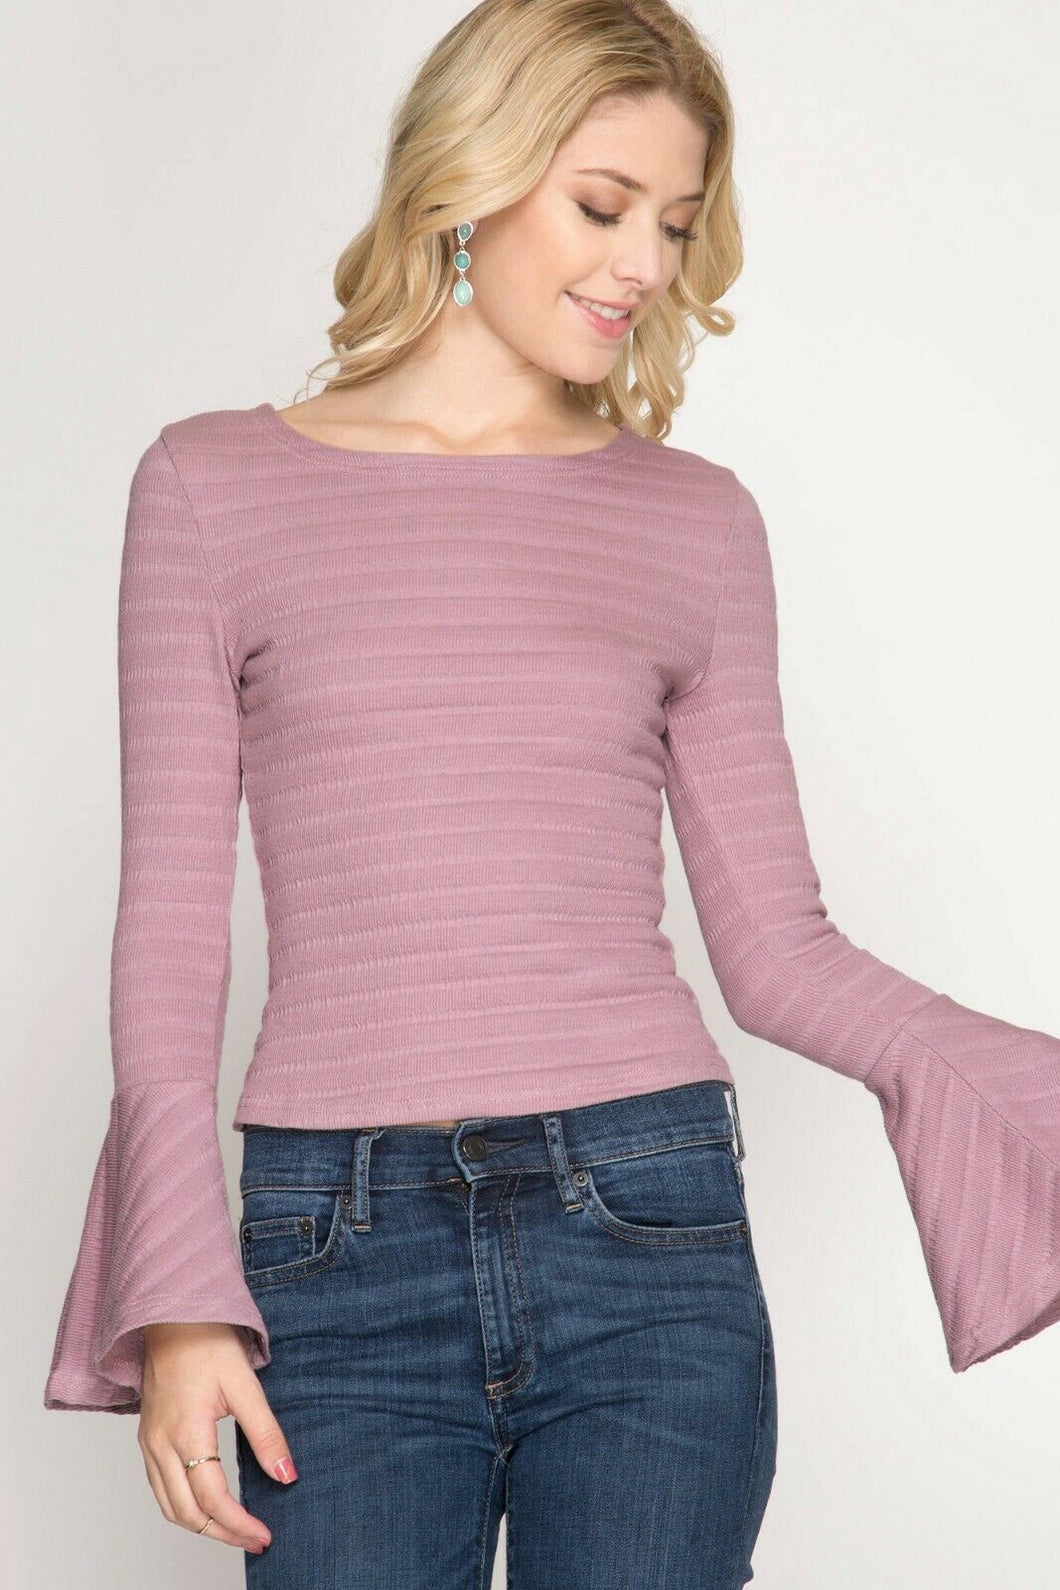 Juniors Ladies Girls Spring Cropped Bell Sleeve Mauve Pink Top